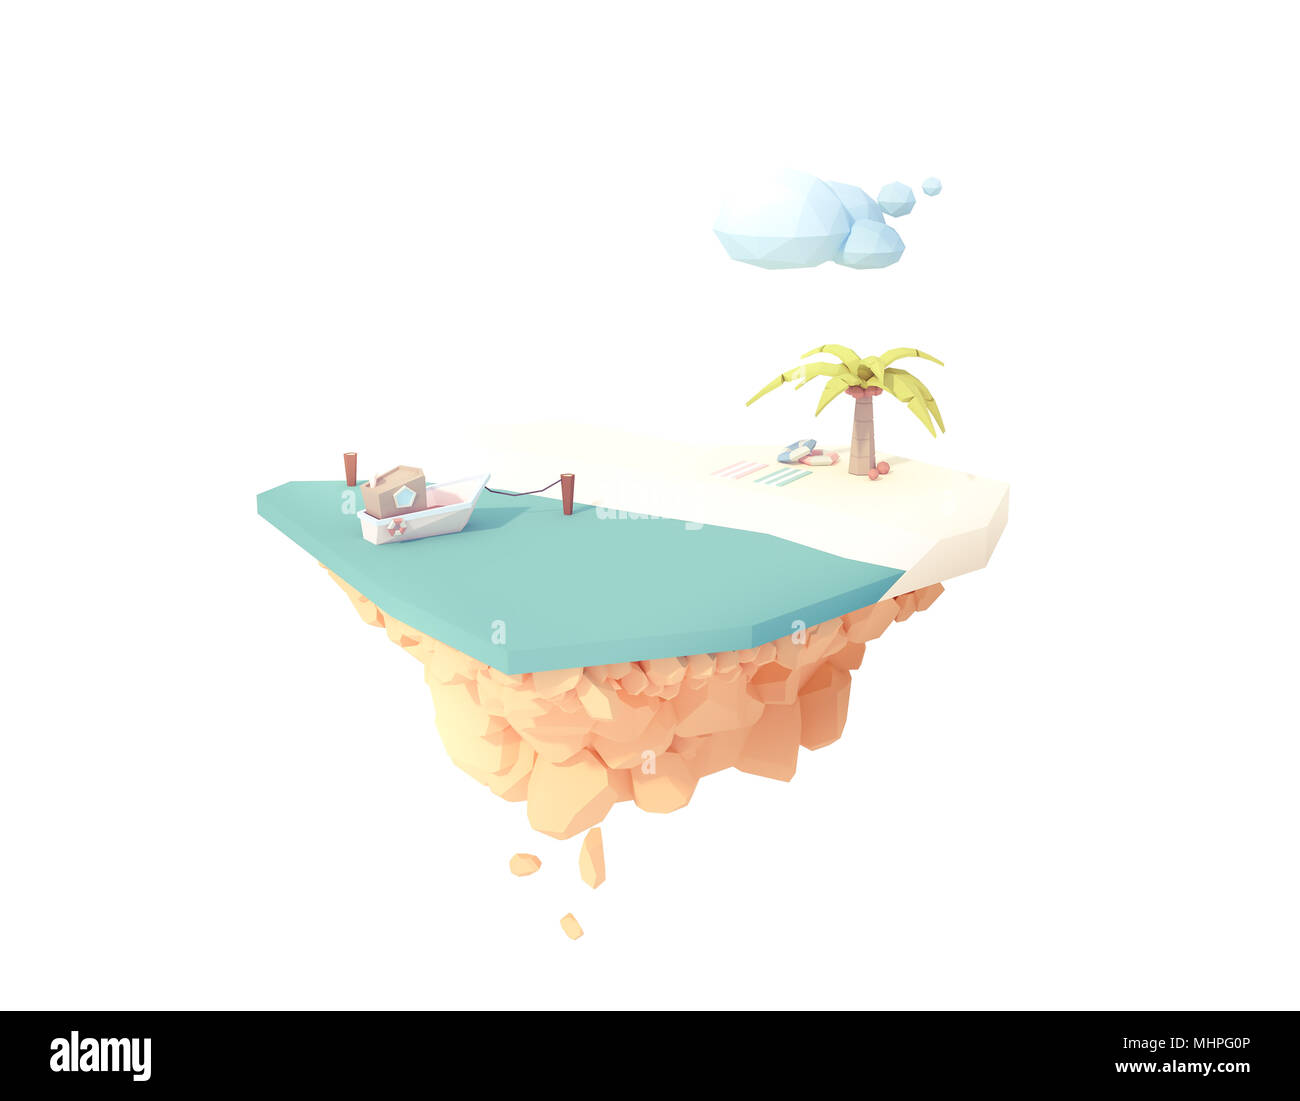 isolated desert private white sand beach on floating island summer vacation travel low poly 3d illustration. seascape minimal art style. - Stock Image